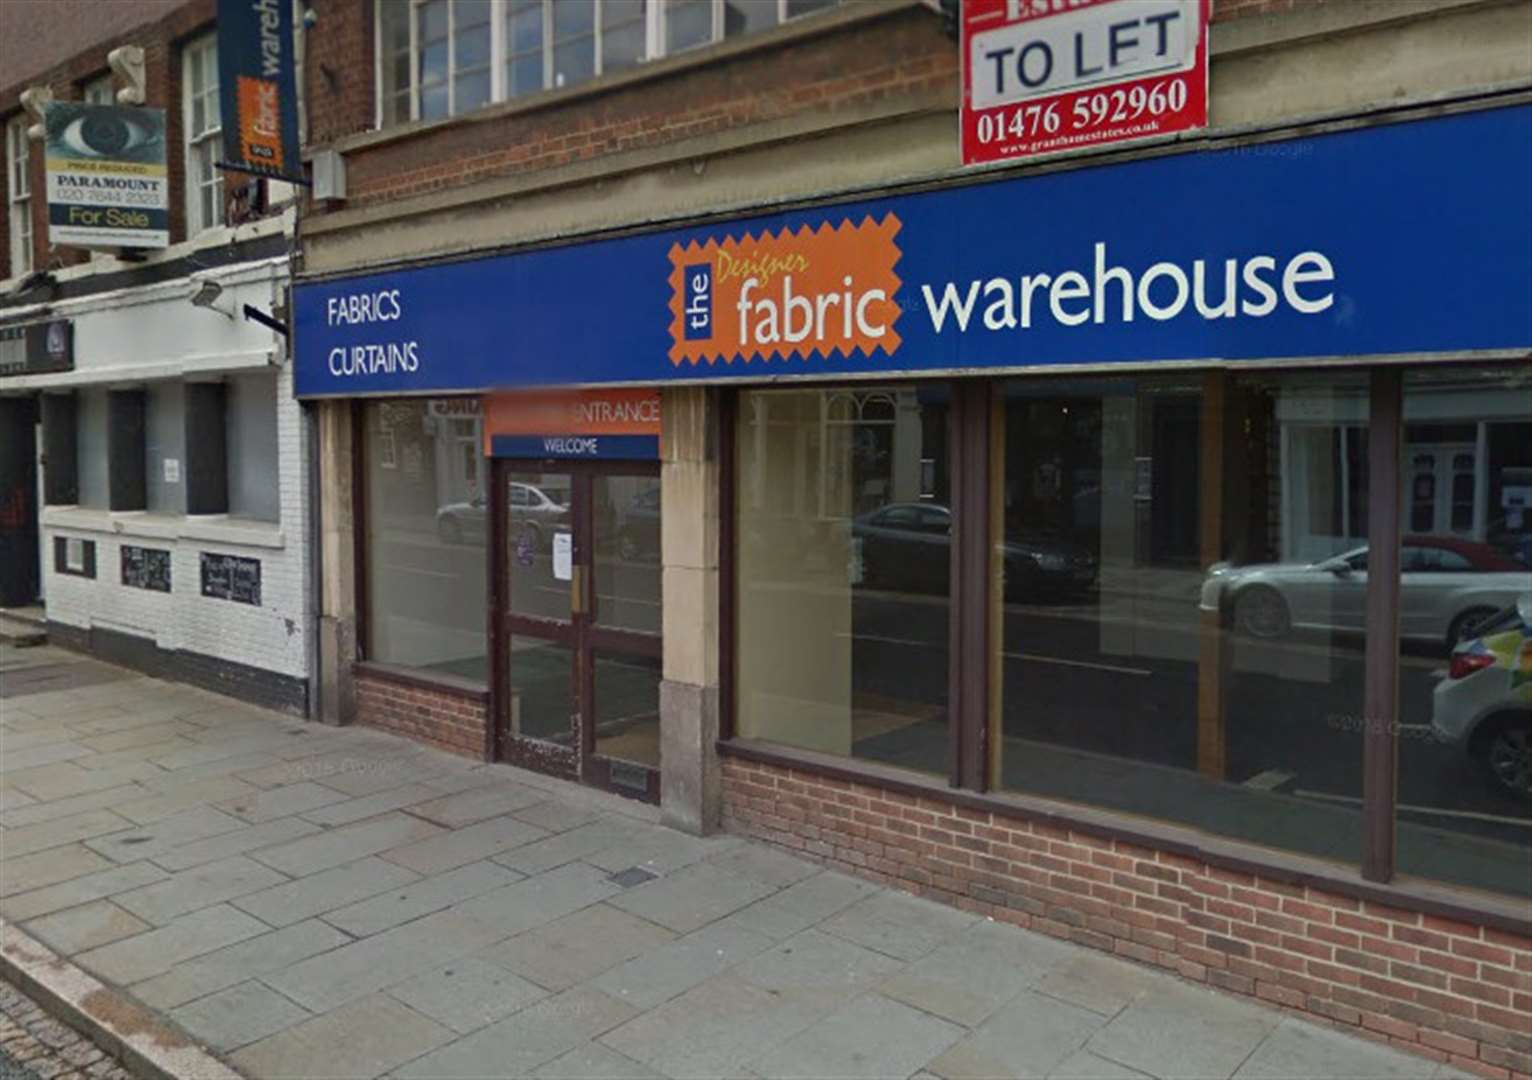 Plan for 24-hour gym in former Designer Fabric Warehouse premises in Grantham